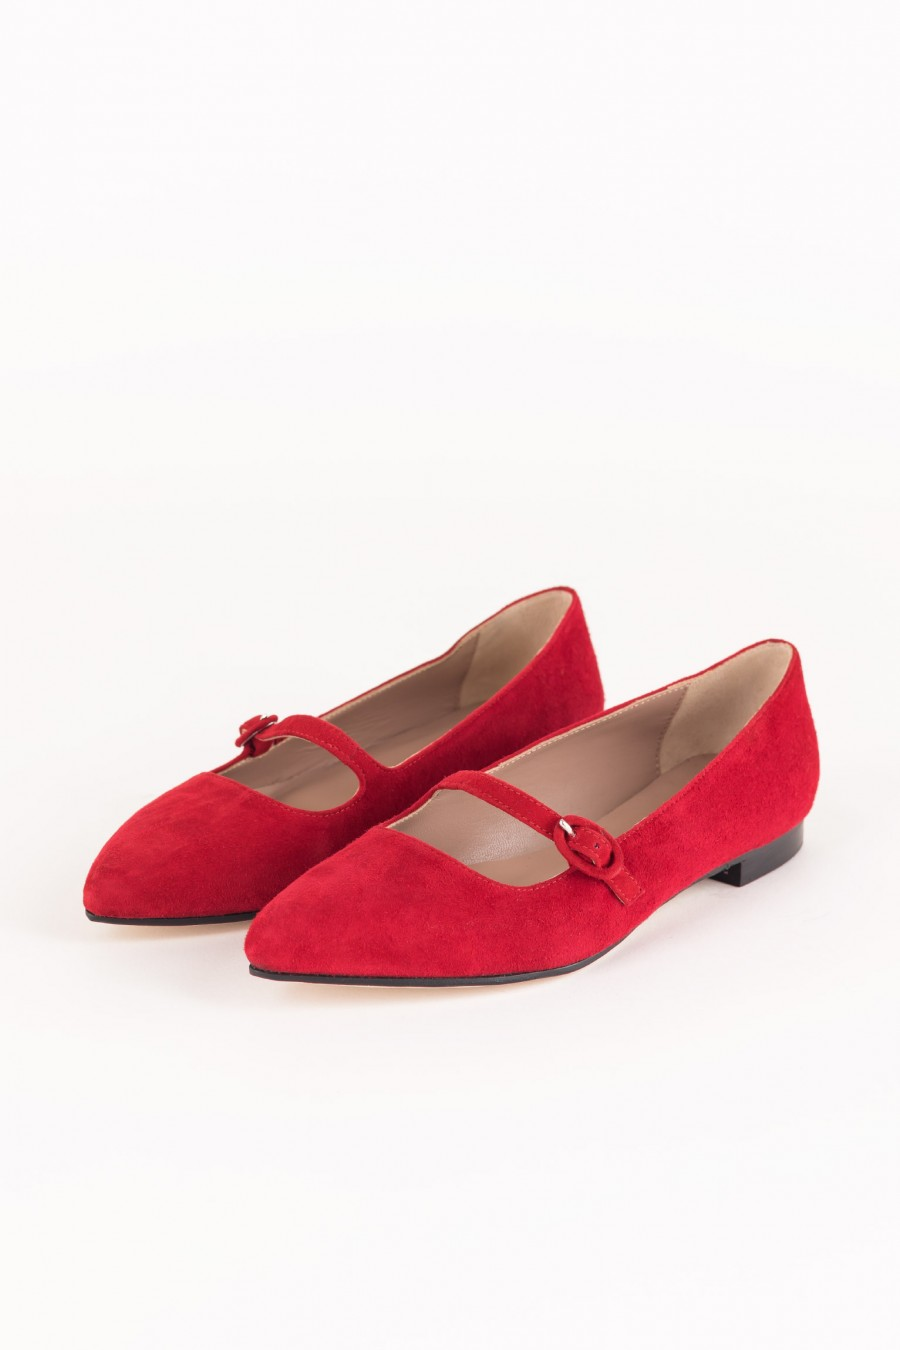 Red suede pointy flats